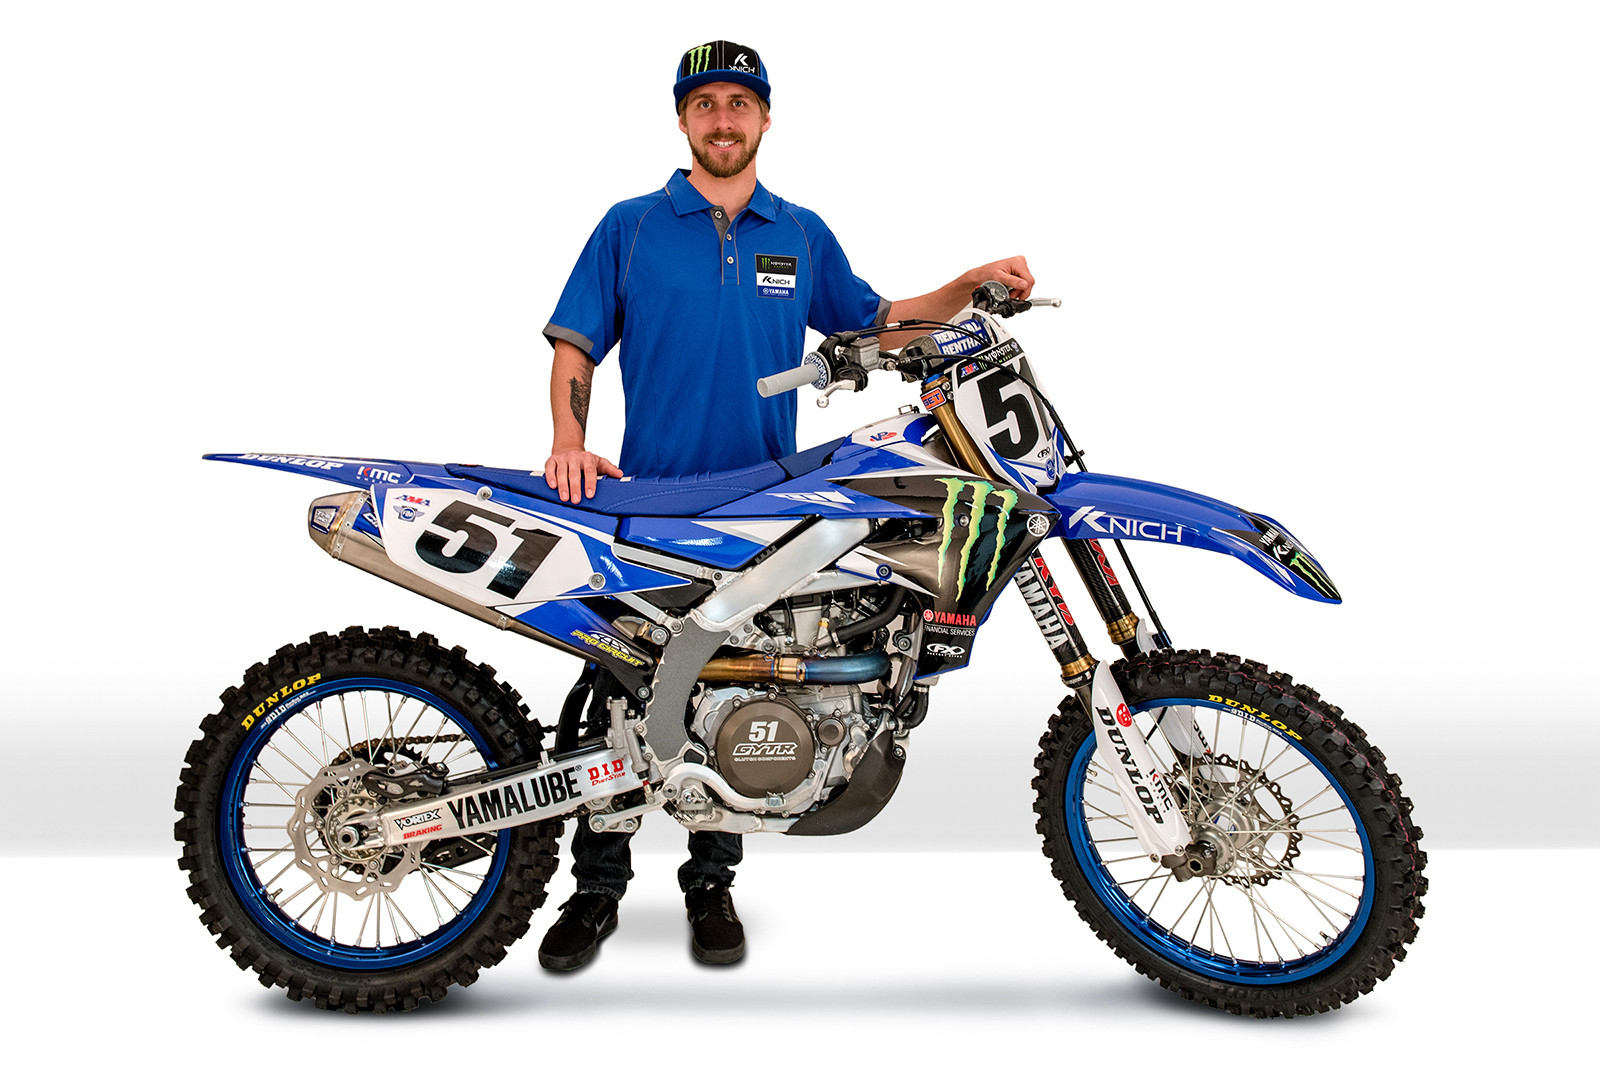 Monster Energy/Knich/Yamaha Factory Racing Team Rider Updates